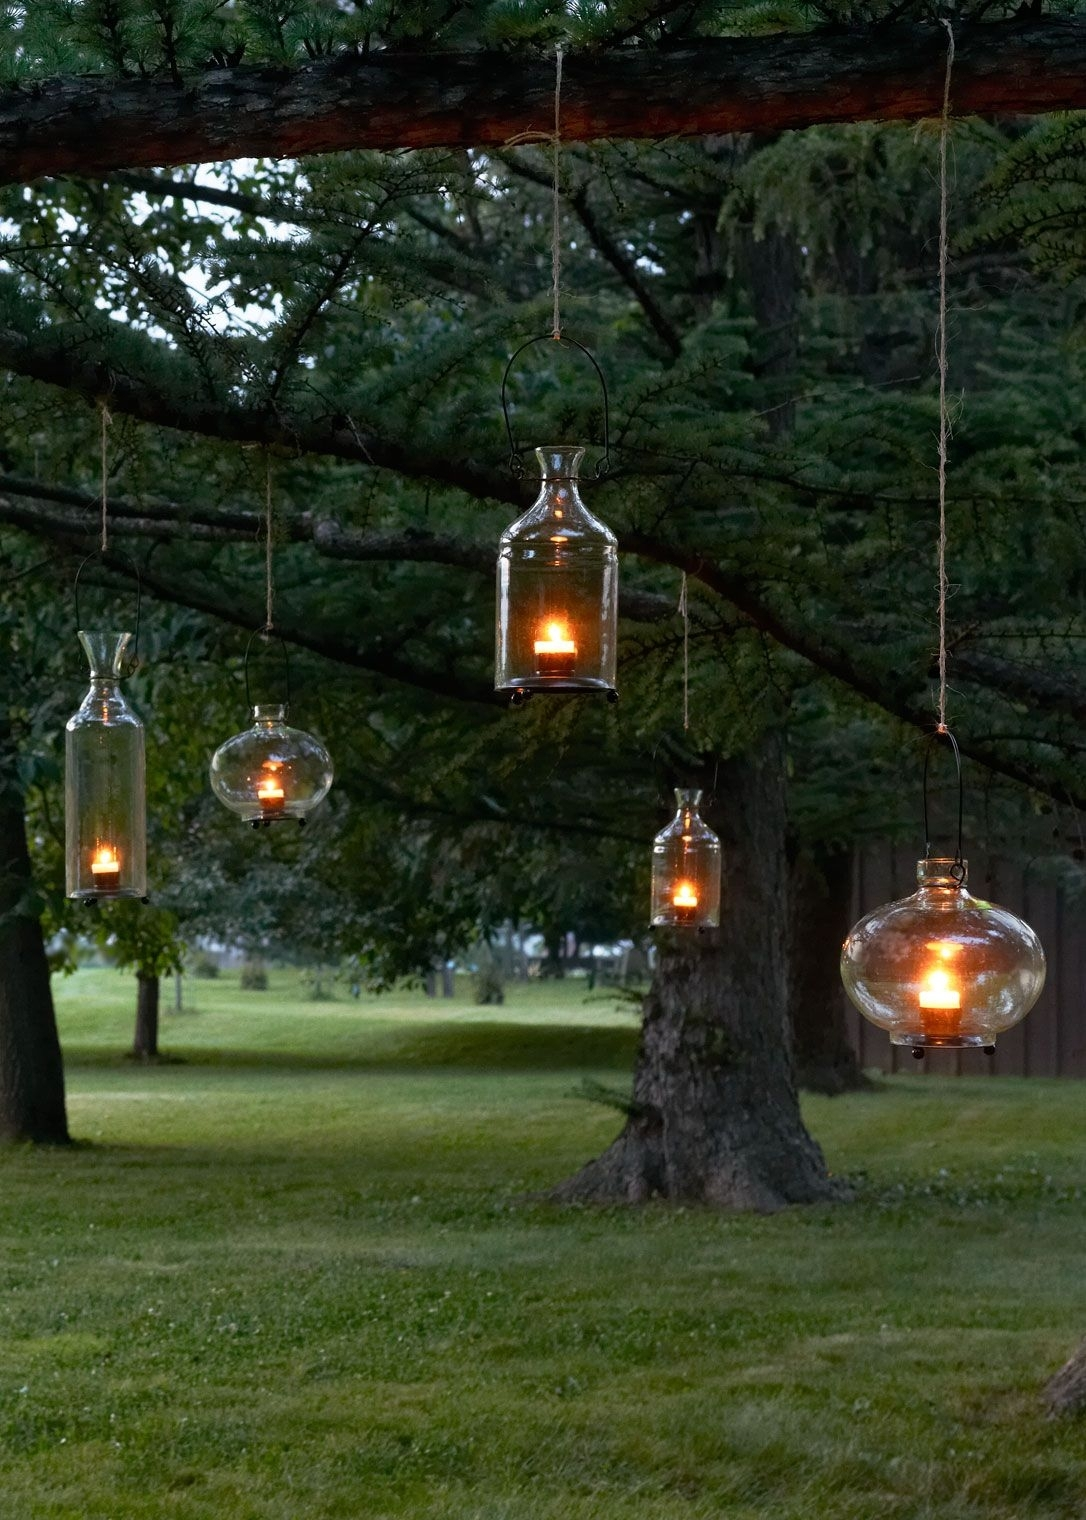 Warm Decor For Your Tabletop Or Garden – Recycled Glass Hanging Within Outdoor Hanging Lanterns For Trees (View 11 of 15)